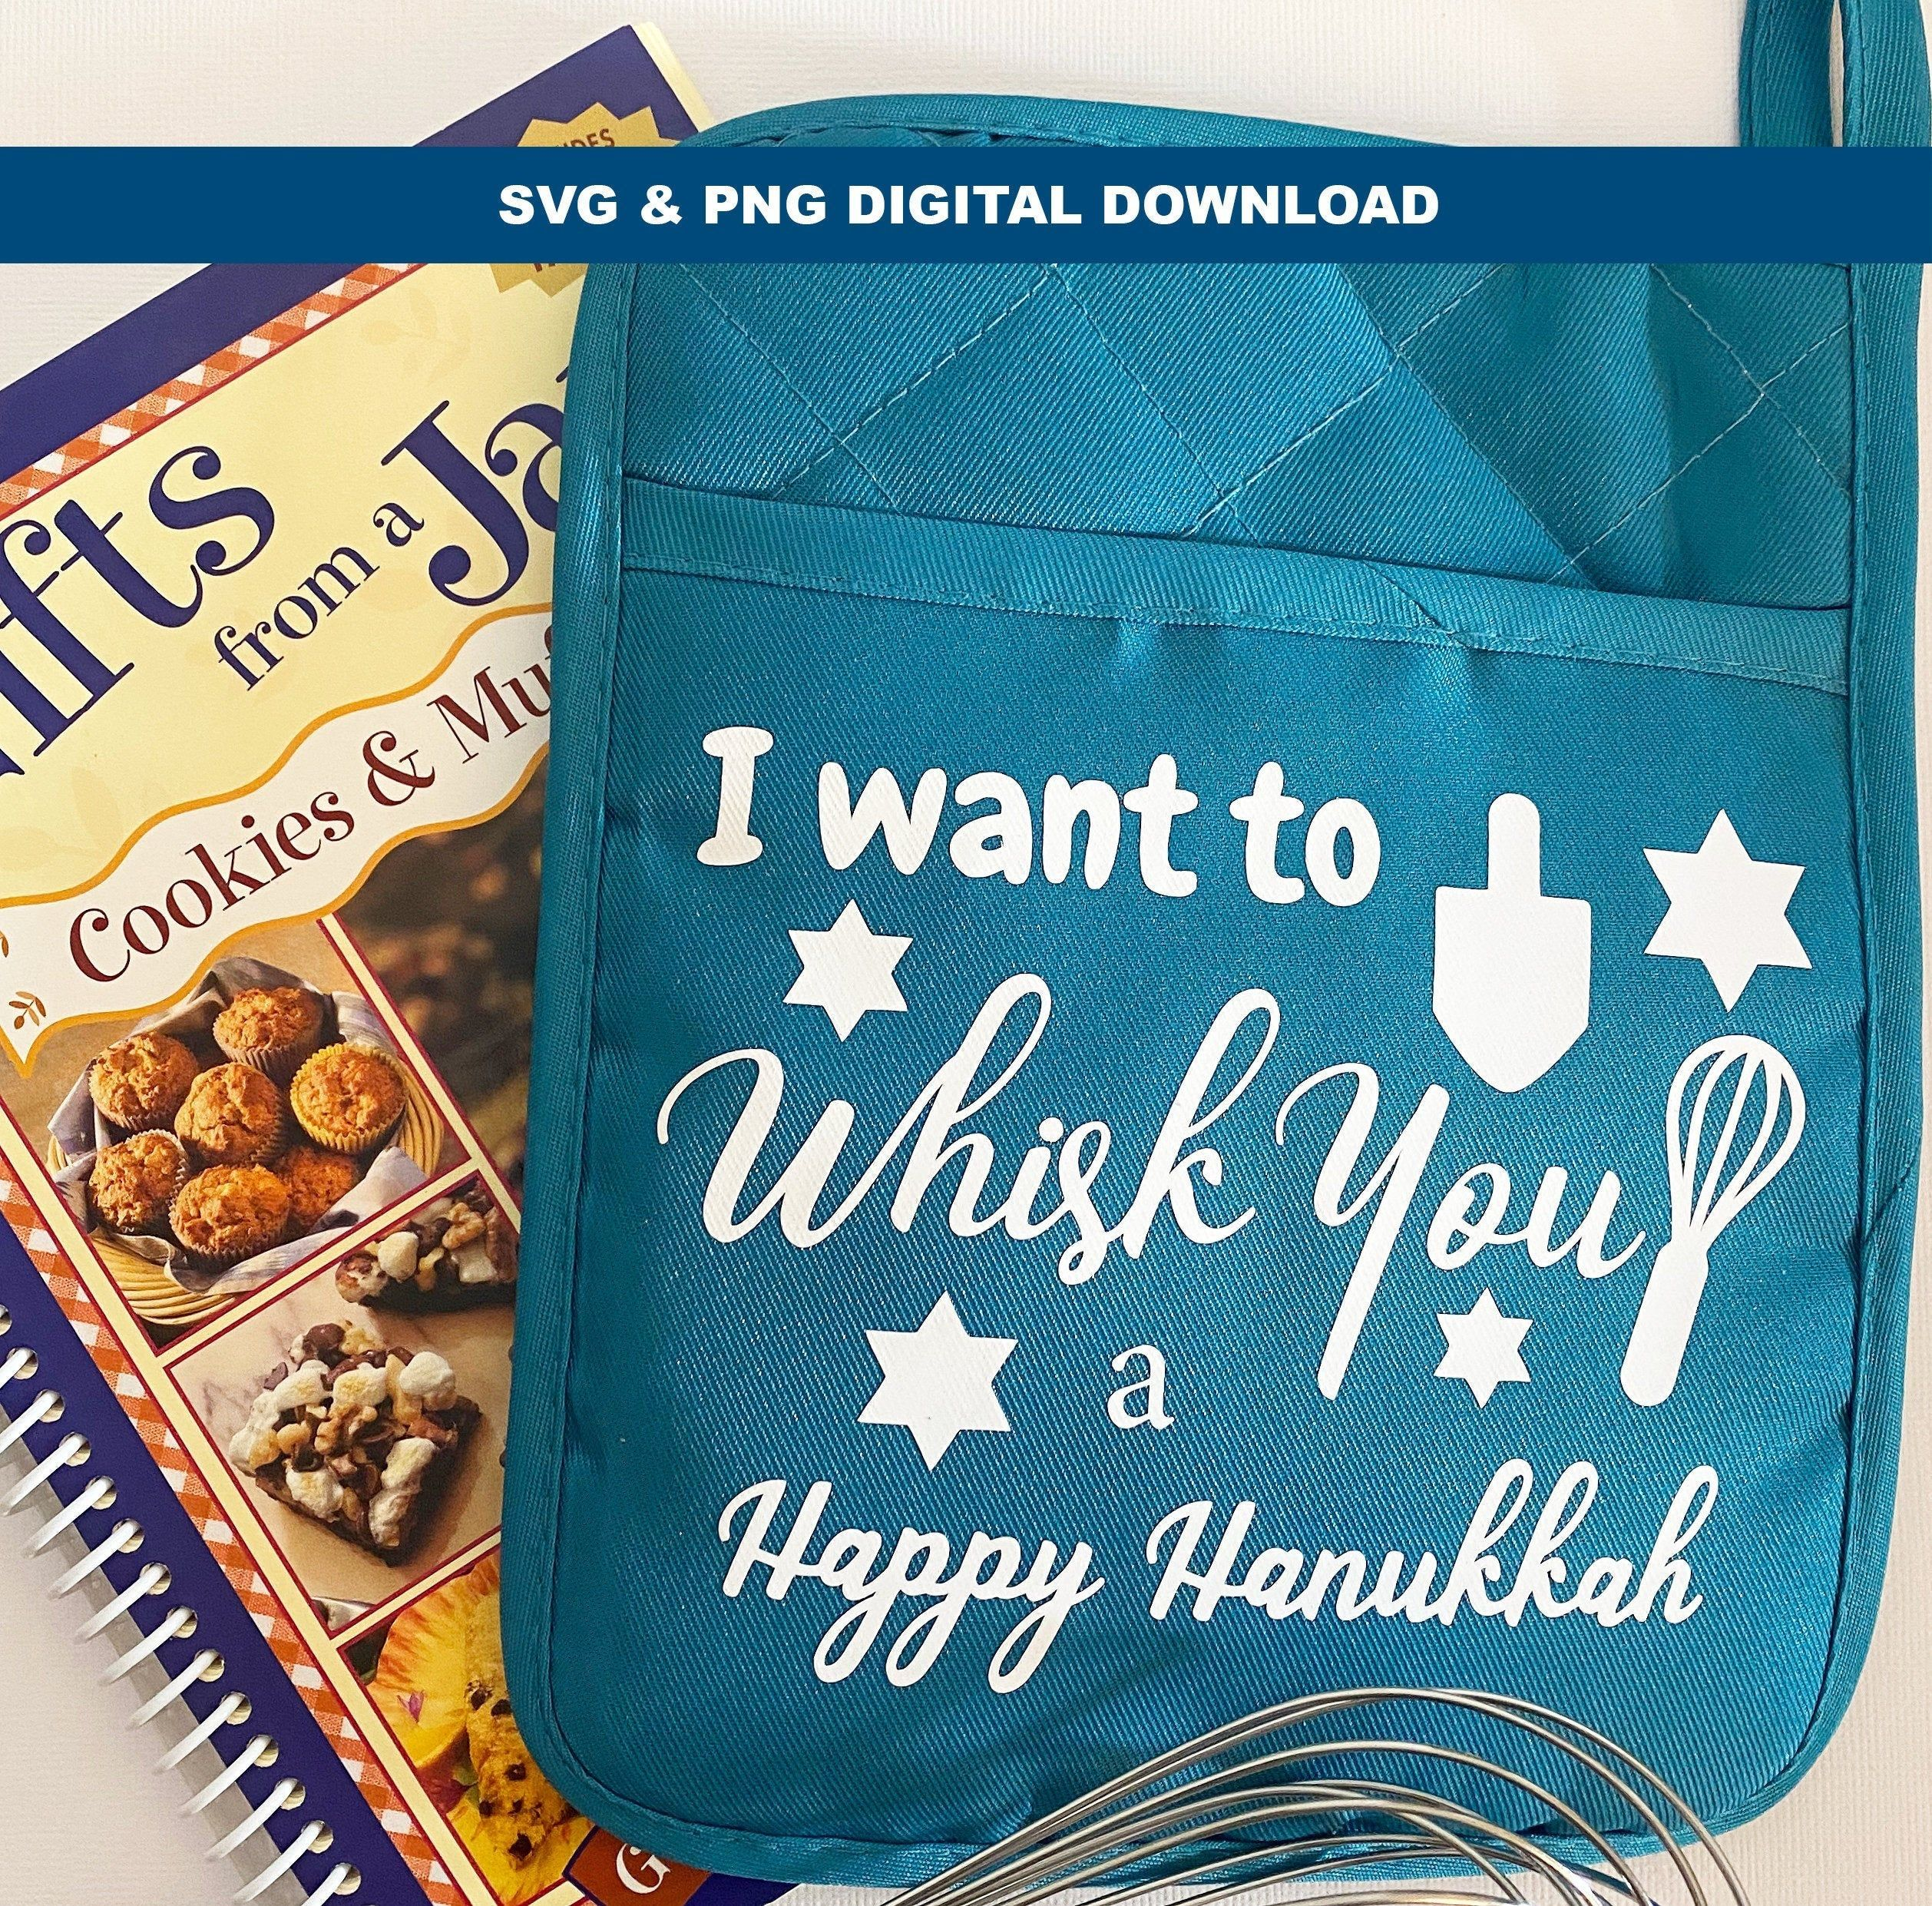 I Want To Whisk You A Happy Hanukkah Svg Great Digital Etsy Happy Hanukkah Hanukkah Happy